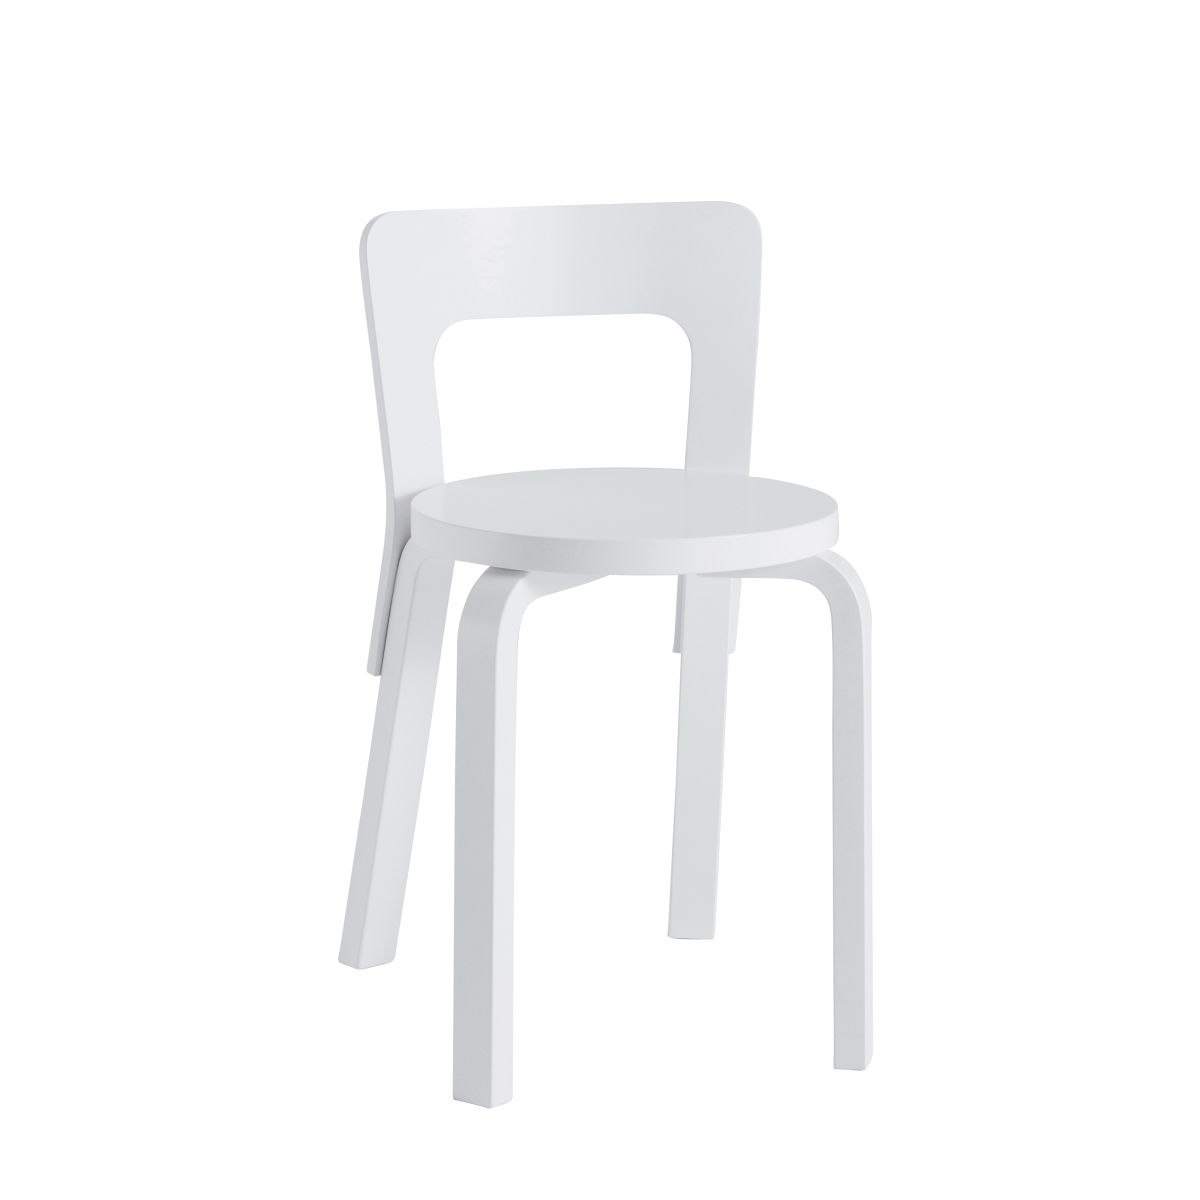 Chair-65-White-Lacquer